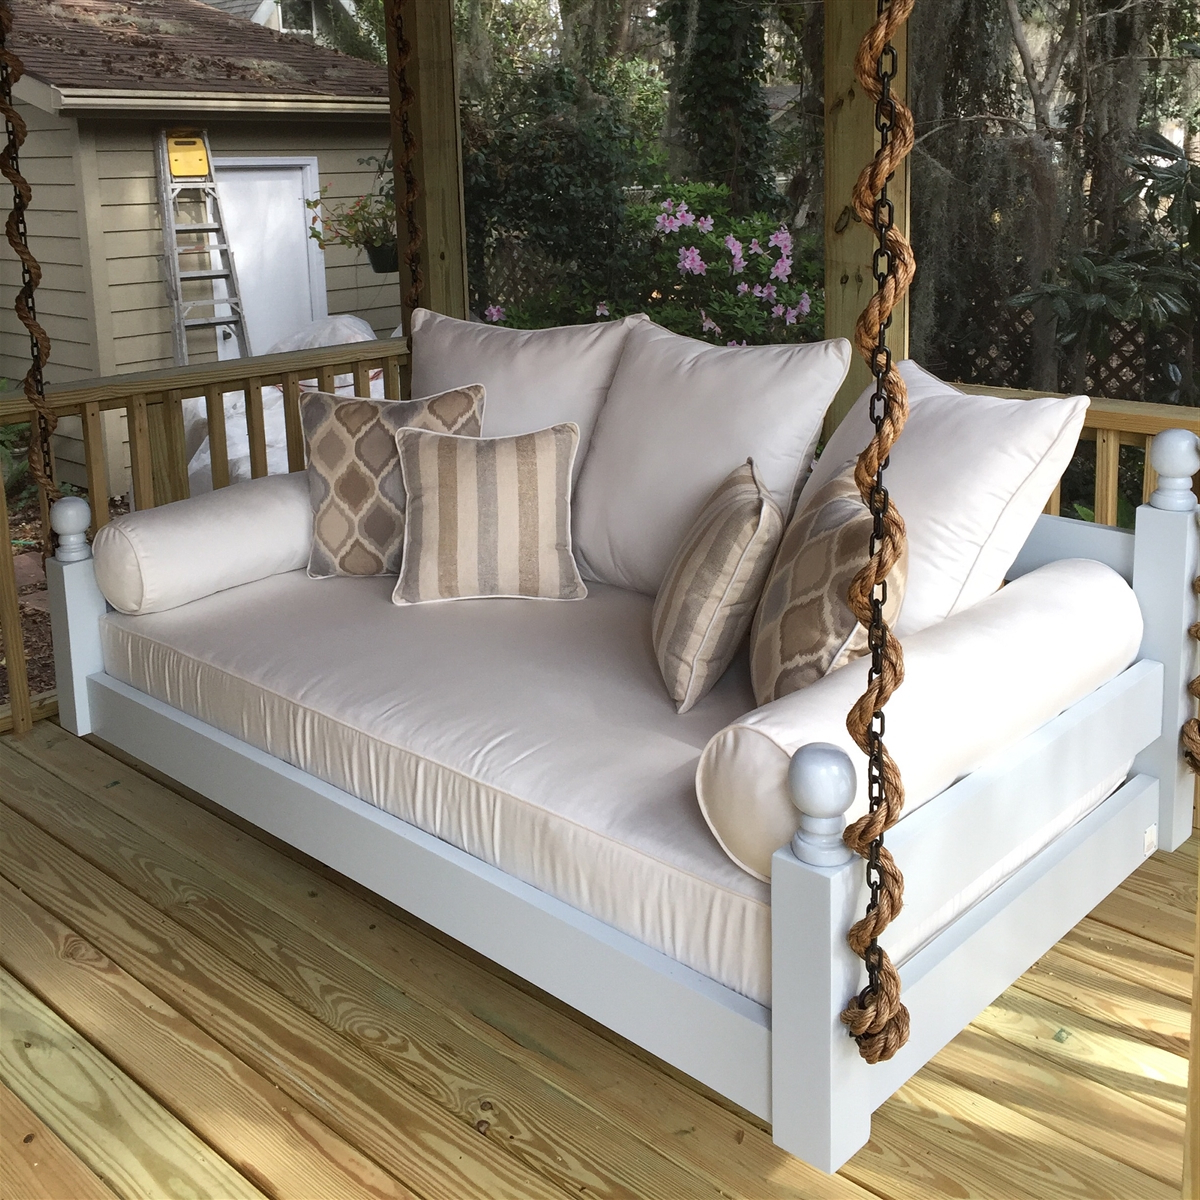 Great And Fun Ideas Porch Swing Bed Throughout Favorite Day Bed Porch Swings (View 14 of 25)